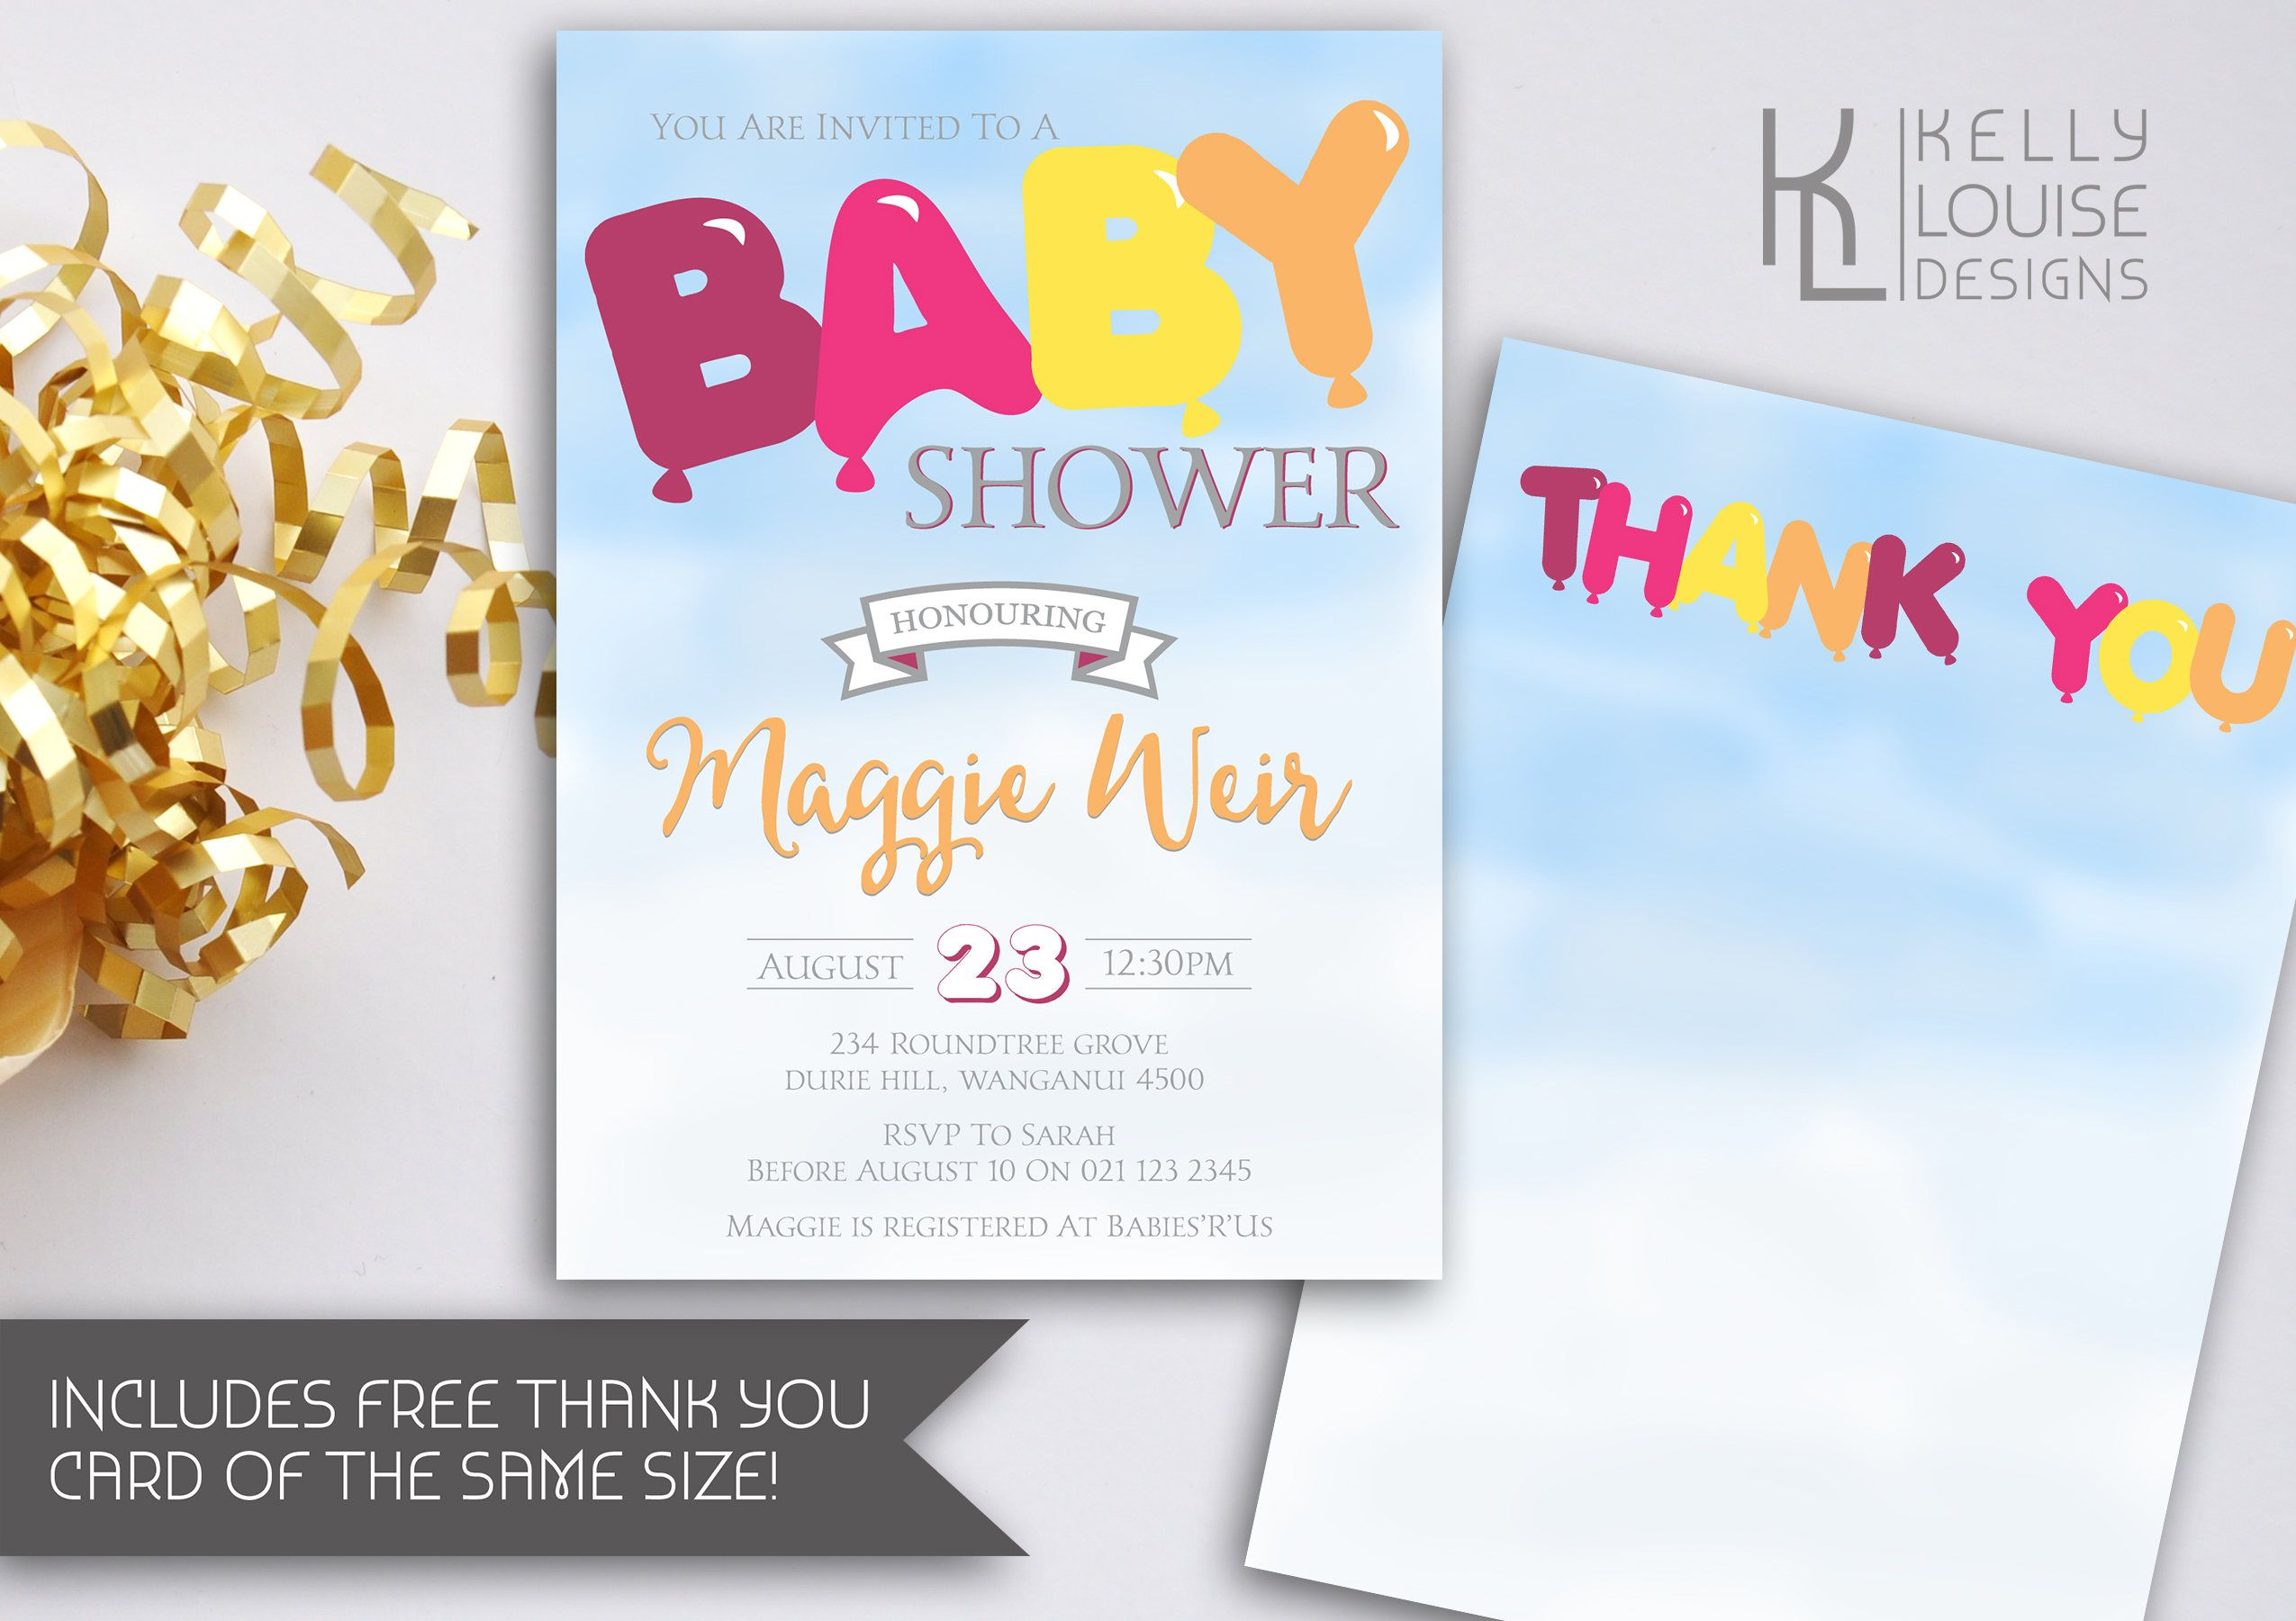 Balloon Baby Shower Invitation | Customise Colours | Girl Baby Shower | Party Balloons | Printable Baby Shower Invitation (174) by kellylouisedesigns on Etsy